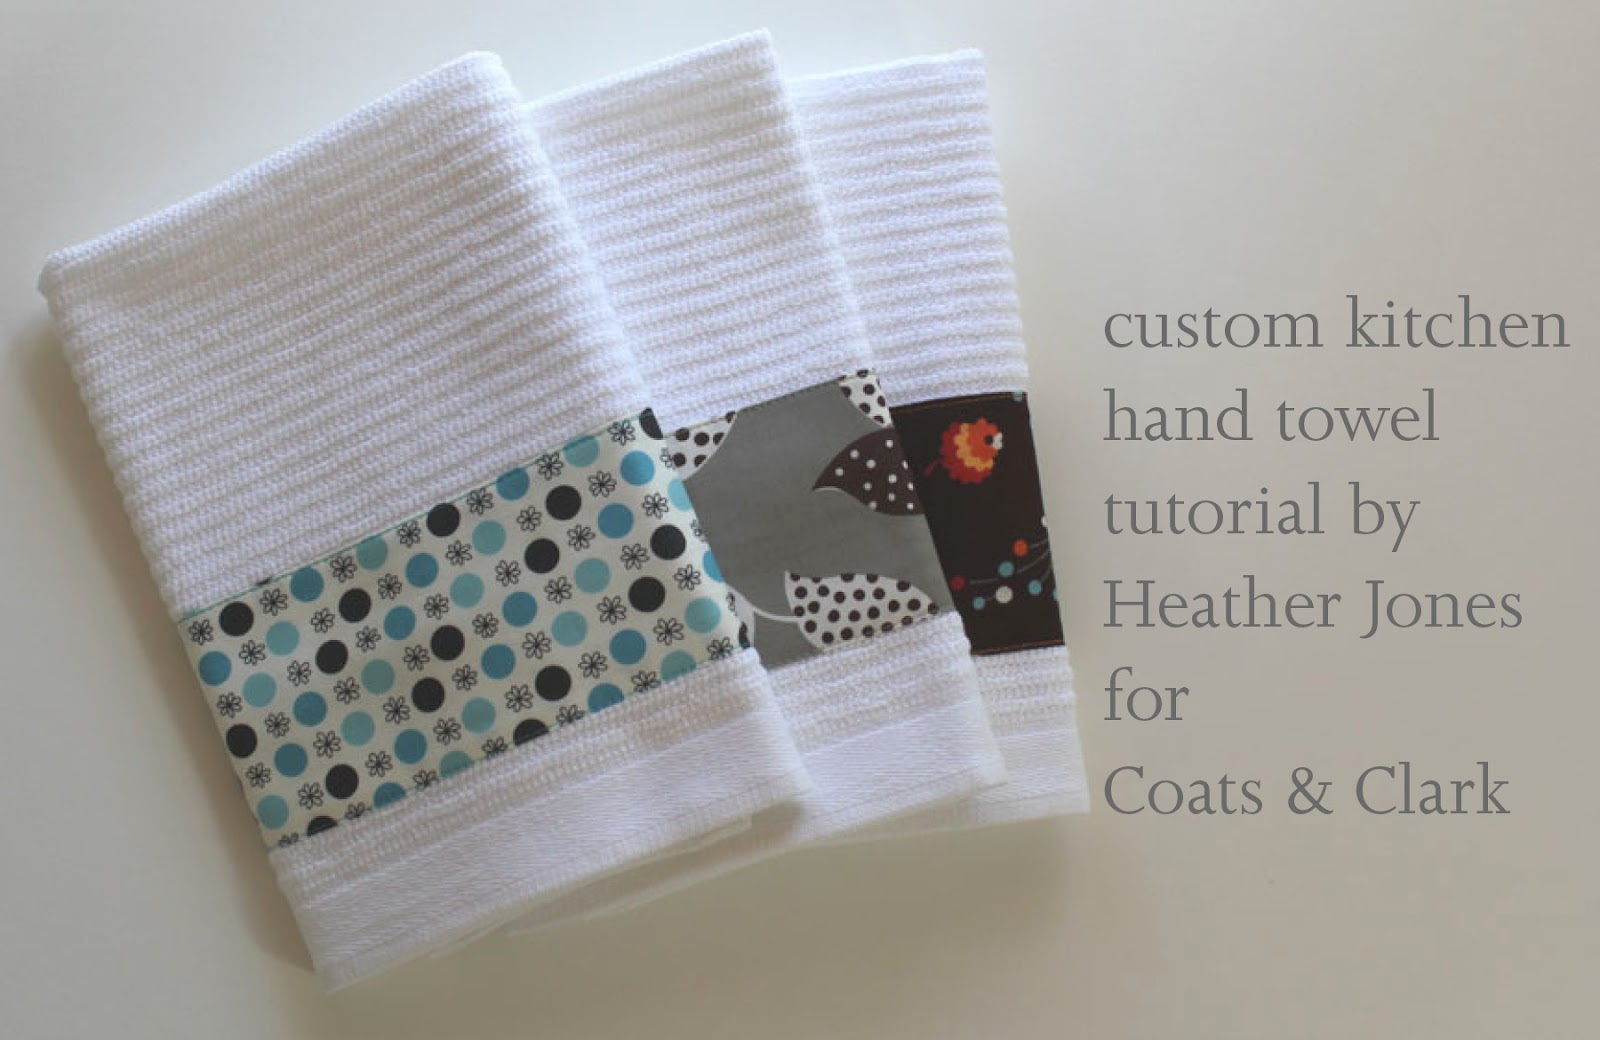 custom kitchen hand towels by heather jones - Decorative Hand Towels